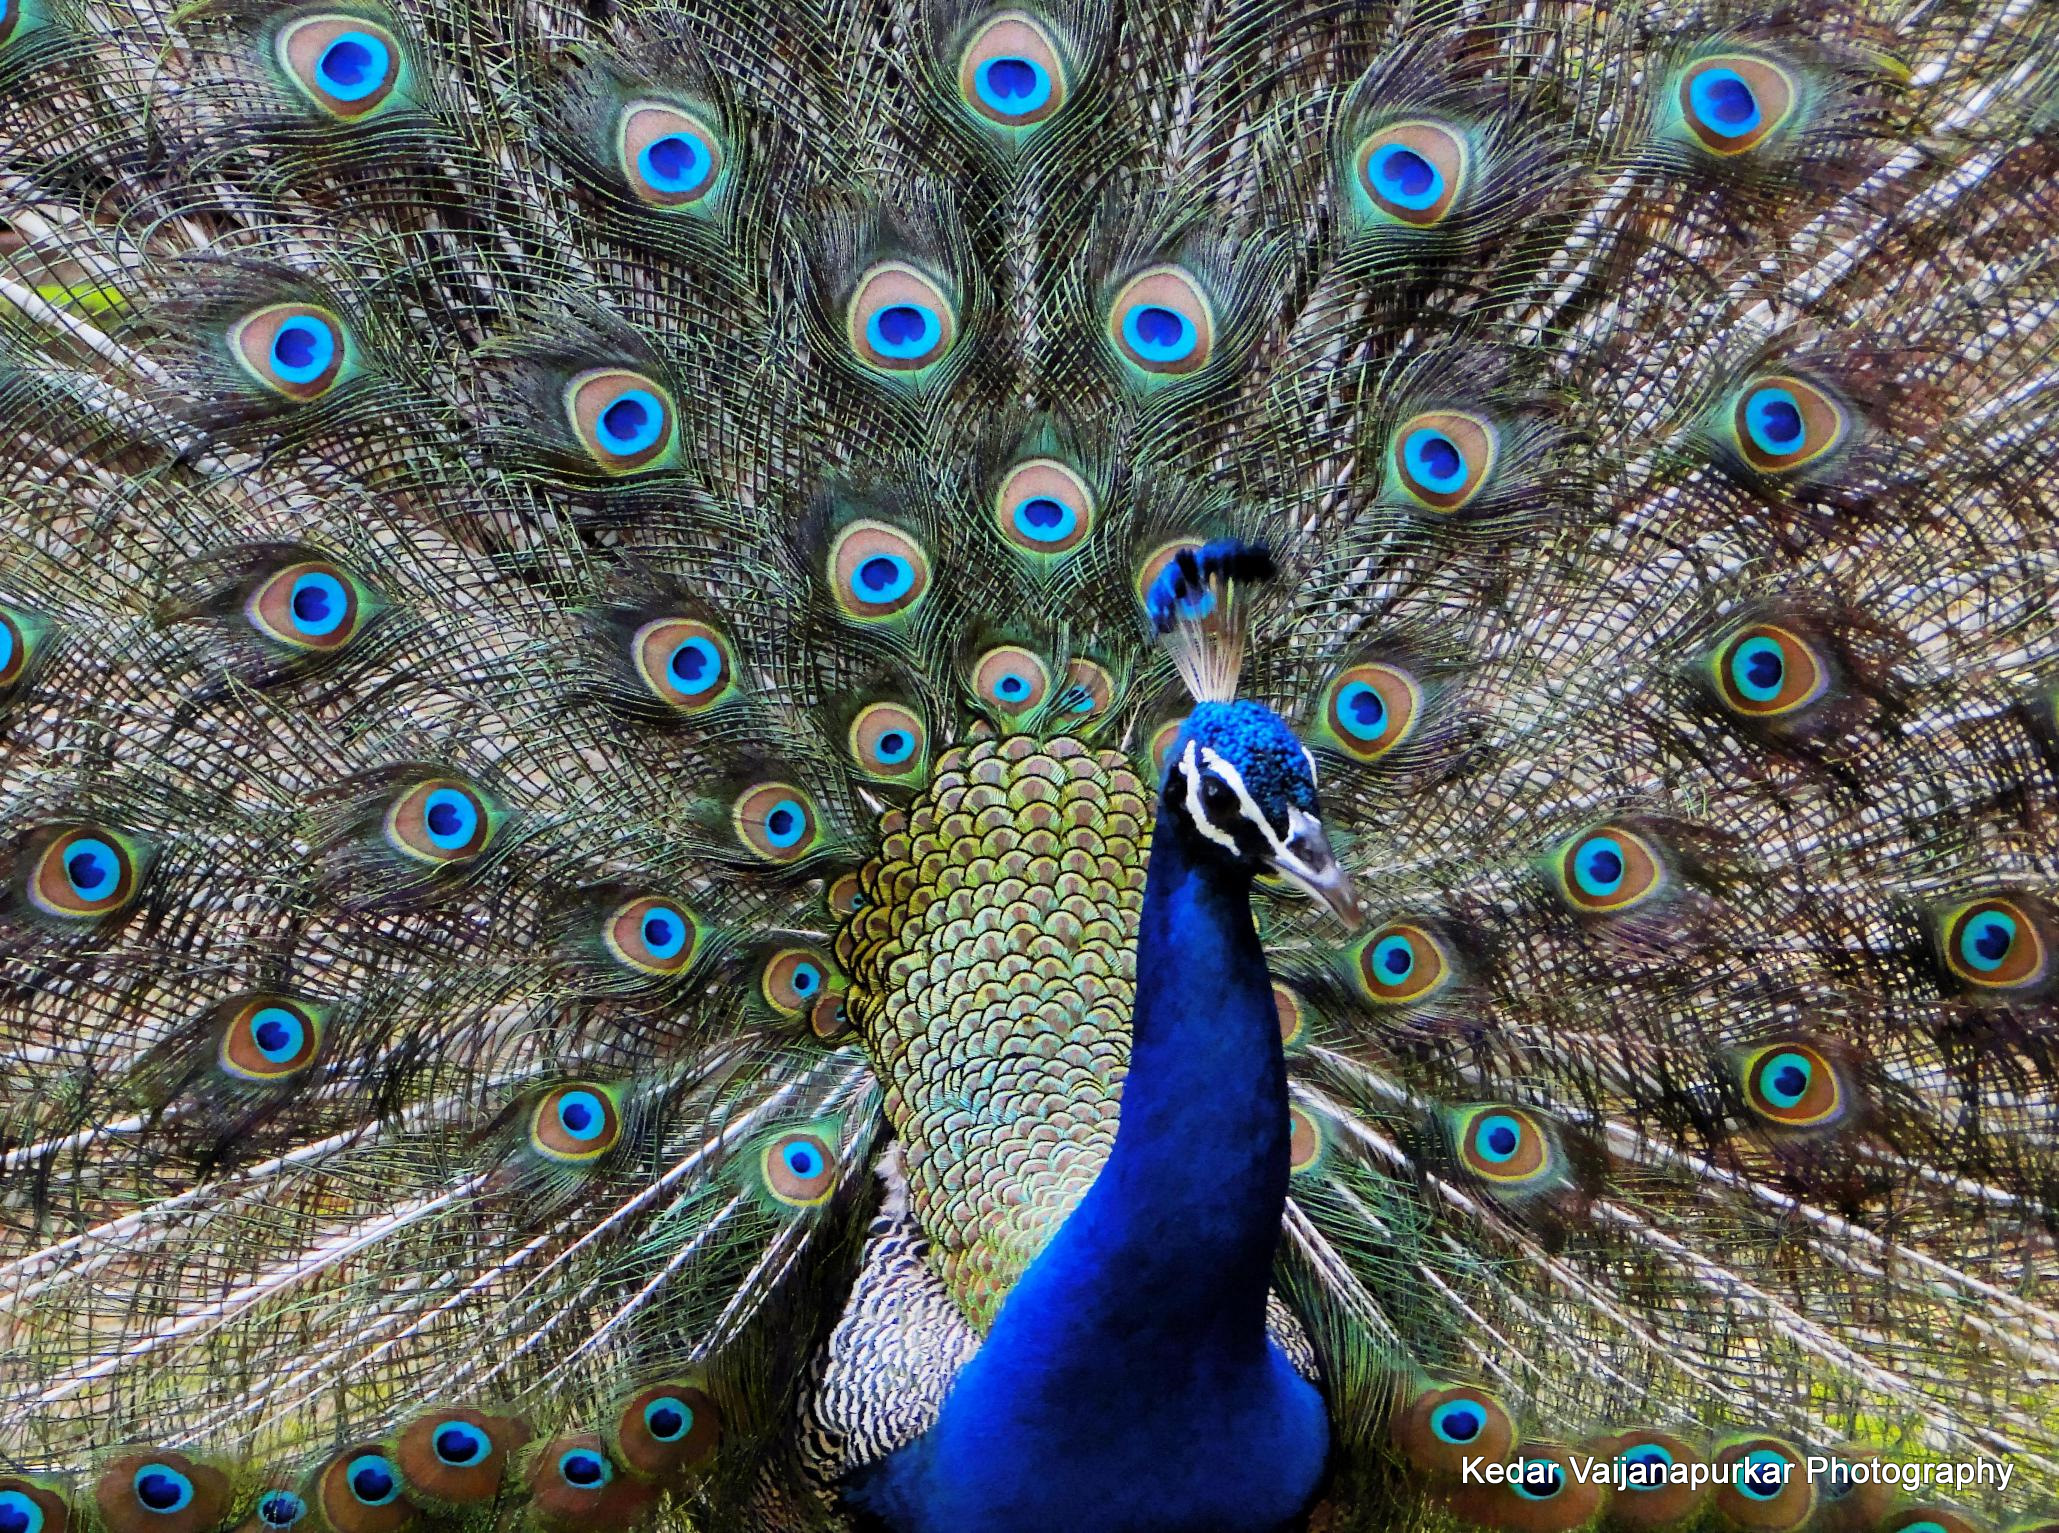 essay on peacock bird The peacock is the most beautiful of all the birds it is to love it to look at it it is the national bird of our country it is a beautiful bird to look at it it has a graceful neck on its head there is a crest it has a bright shining tail there are violet eye-like spot ton its tail feathers.